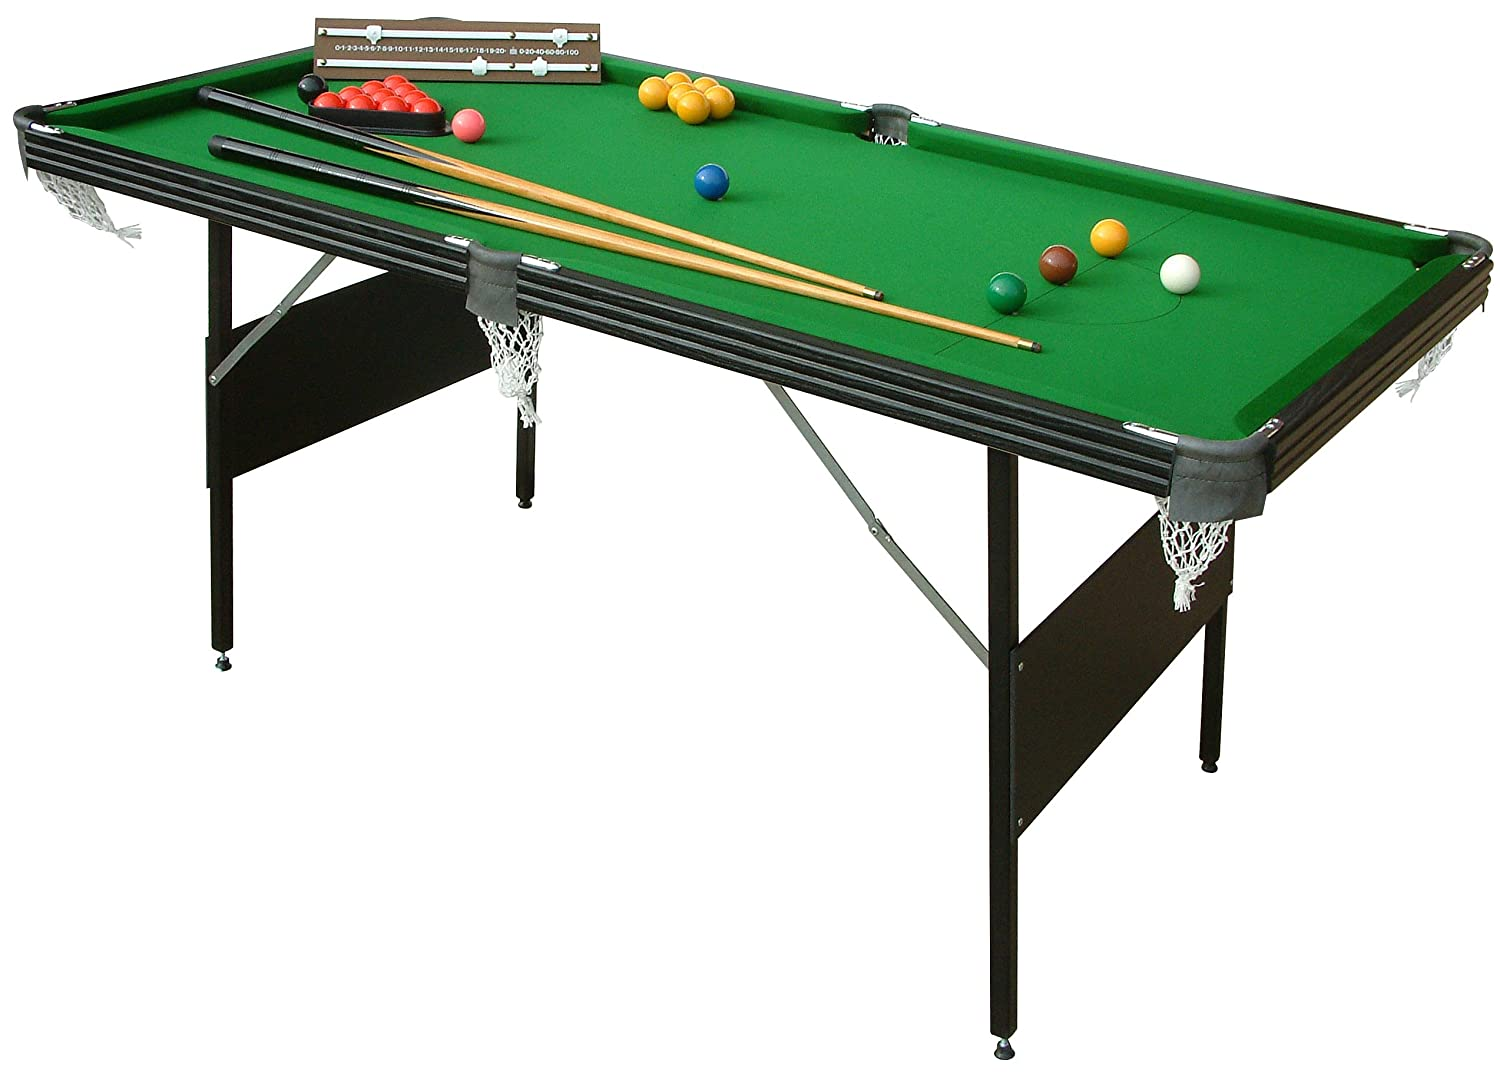 Exceptional Mightymast Leisure Crucible 2 In 1 Fold Up Snooker/Pool Table   Green, 6  Ft: Amazon.co.uk: Sports U0026 Outdoors